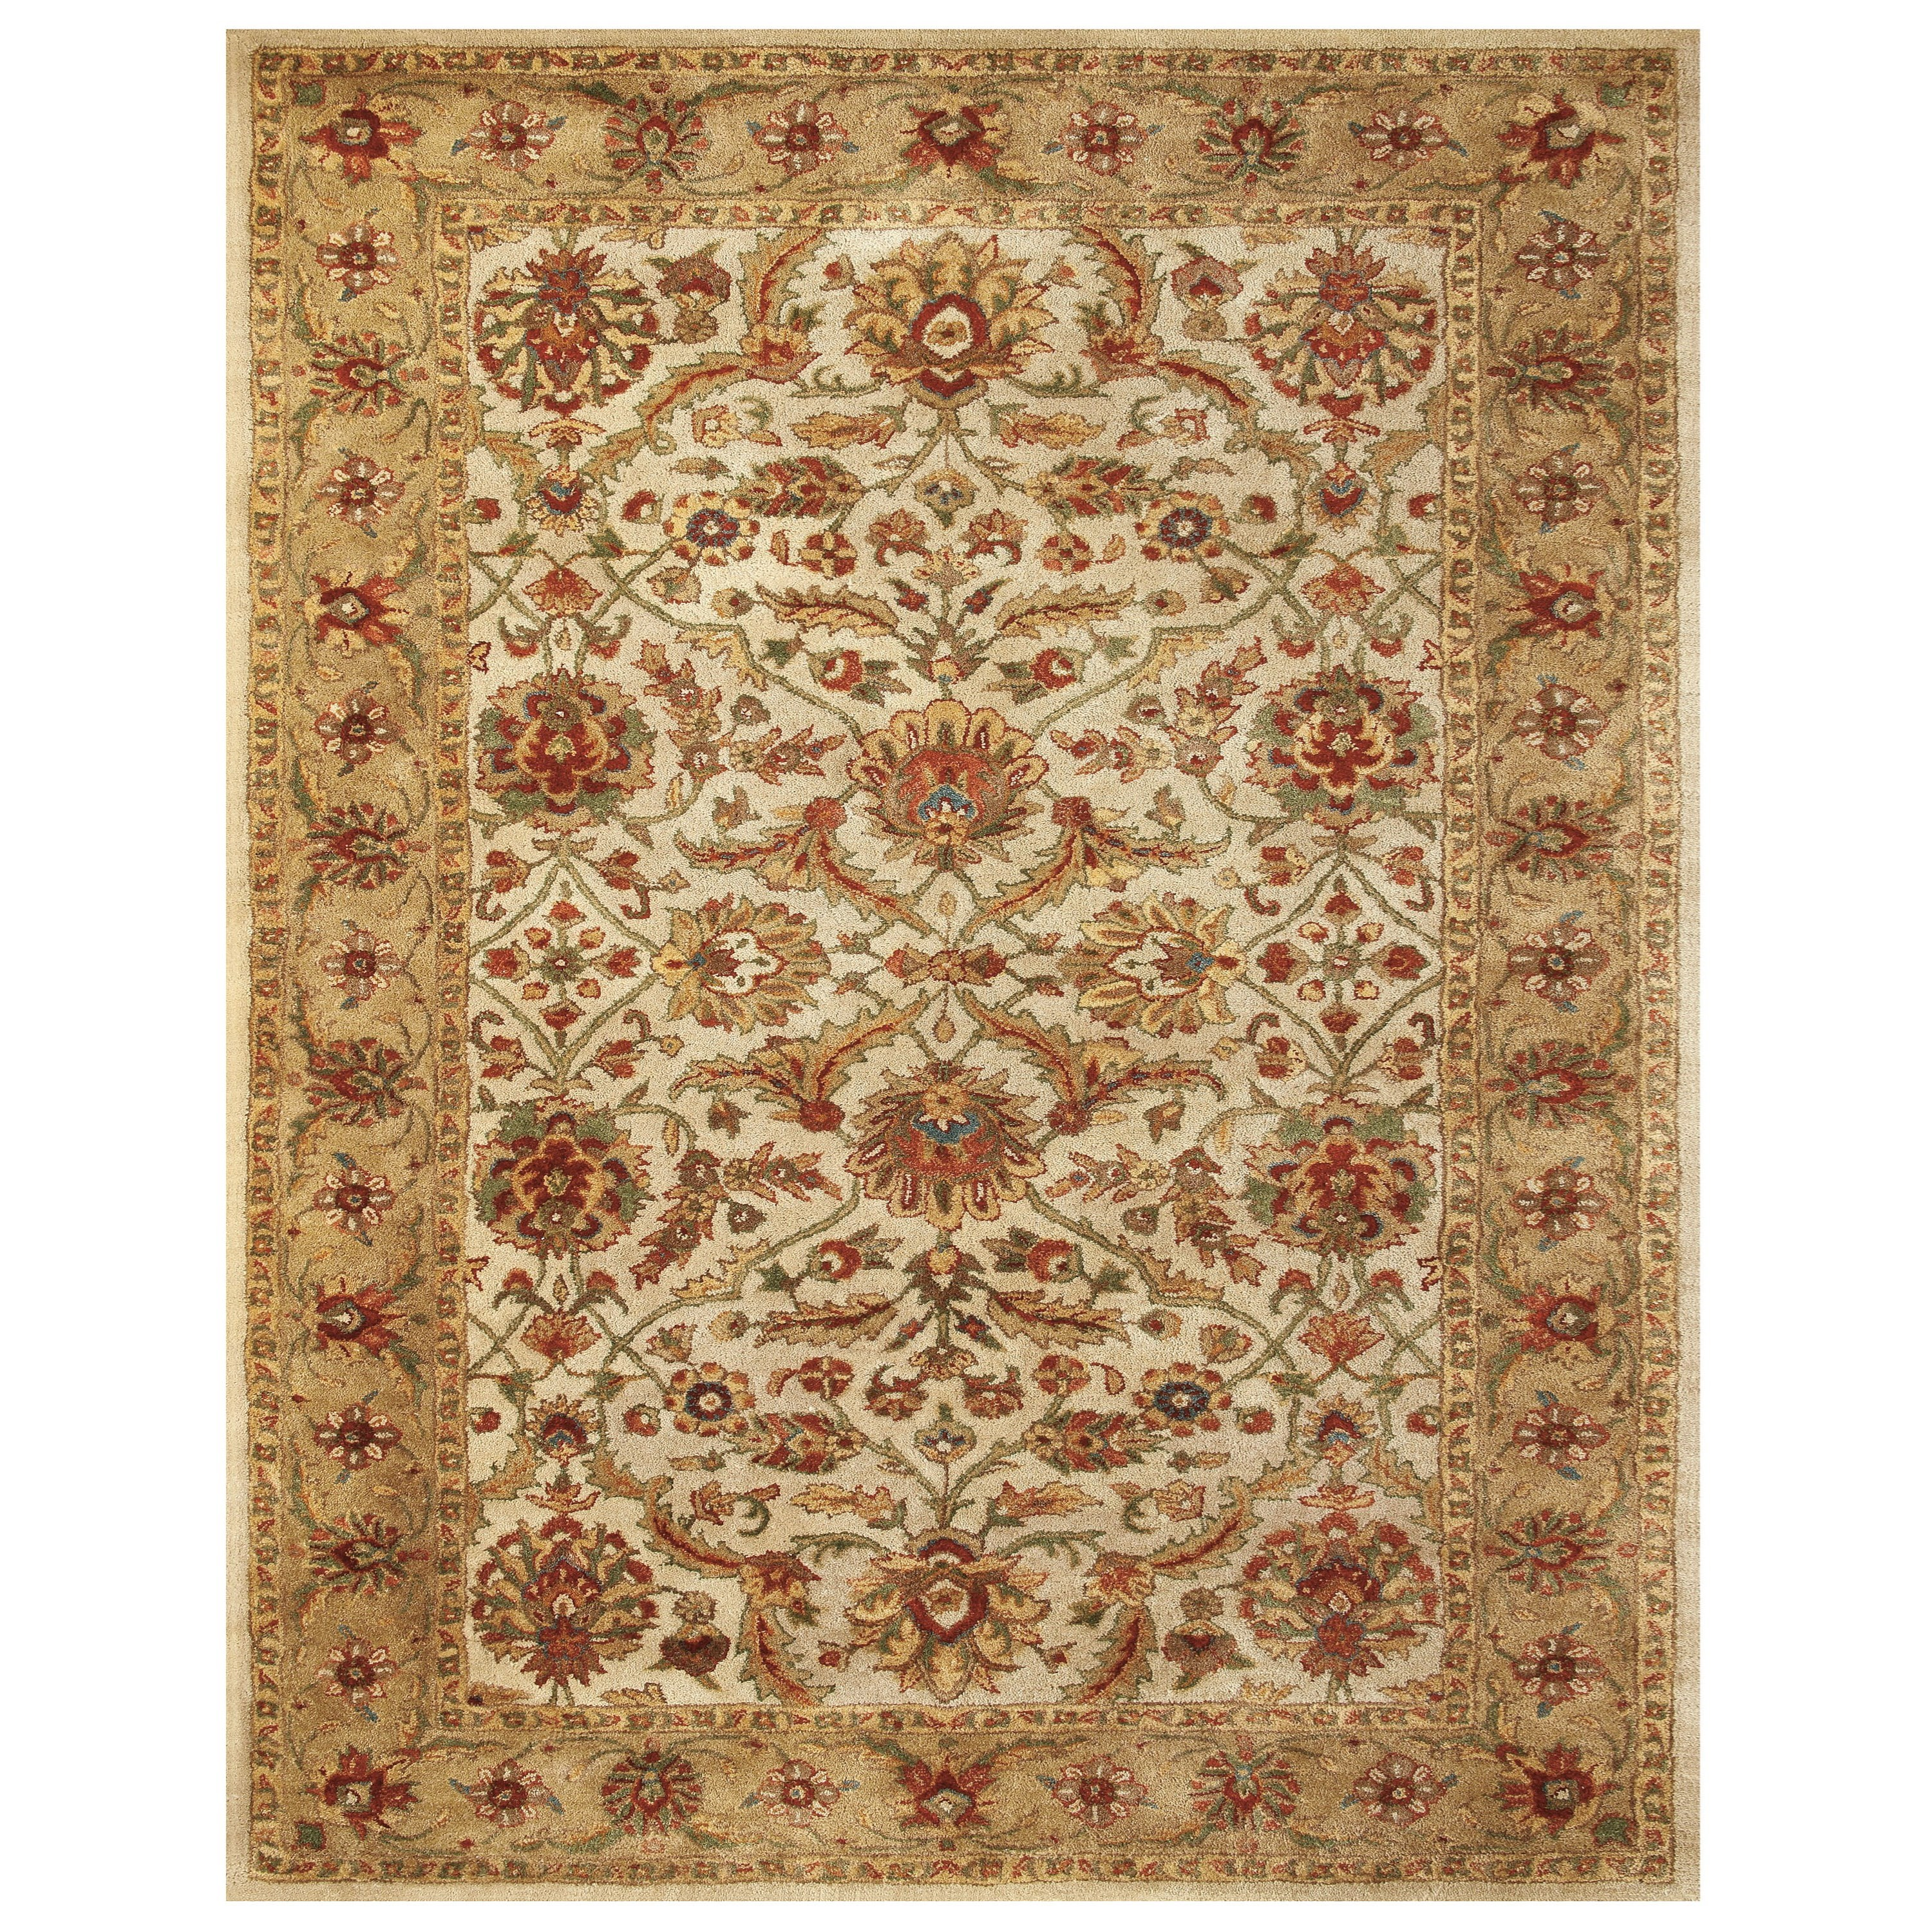 Alexandra Ivory/Light Gold 5' x 8' Area Rug by Feizy Rugs at Sprintz Furniture